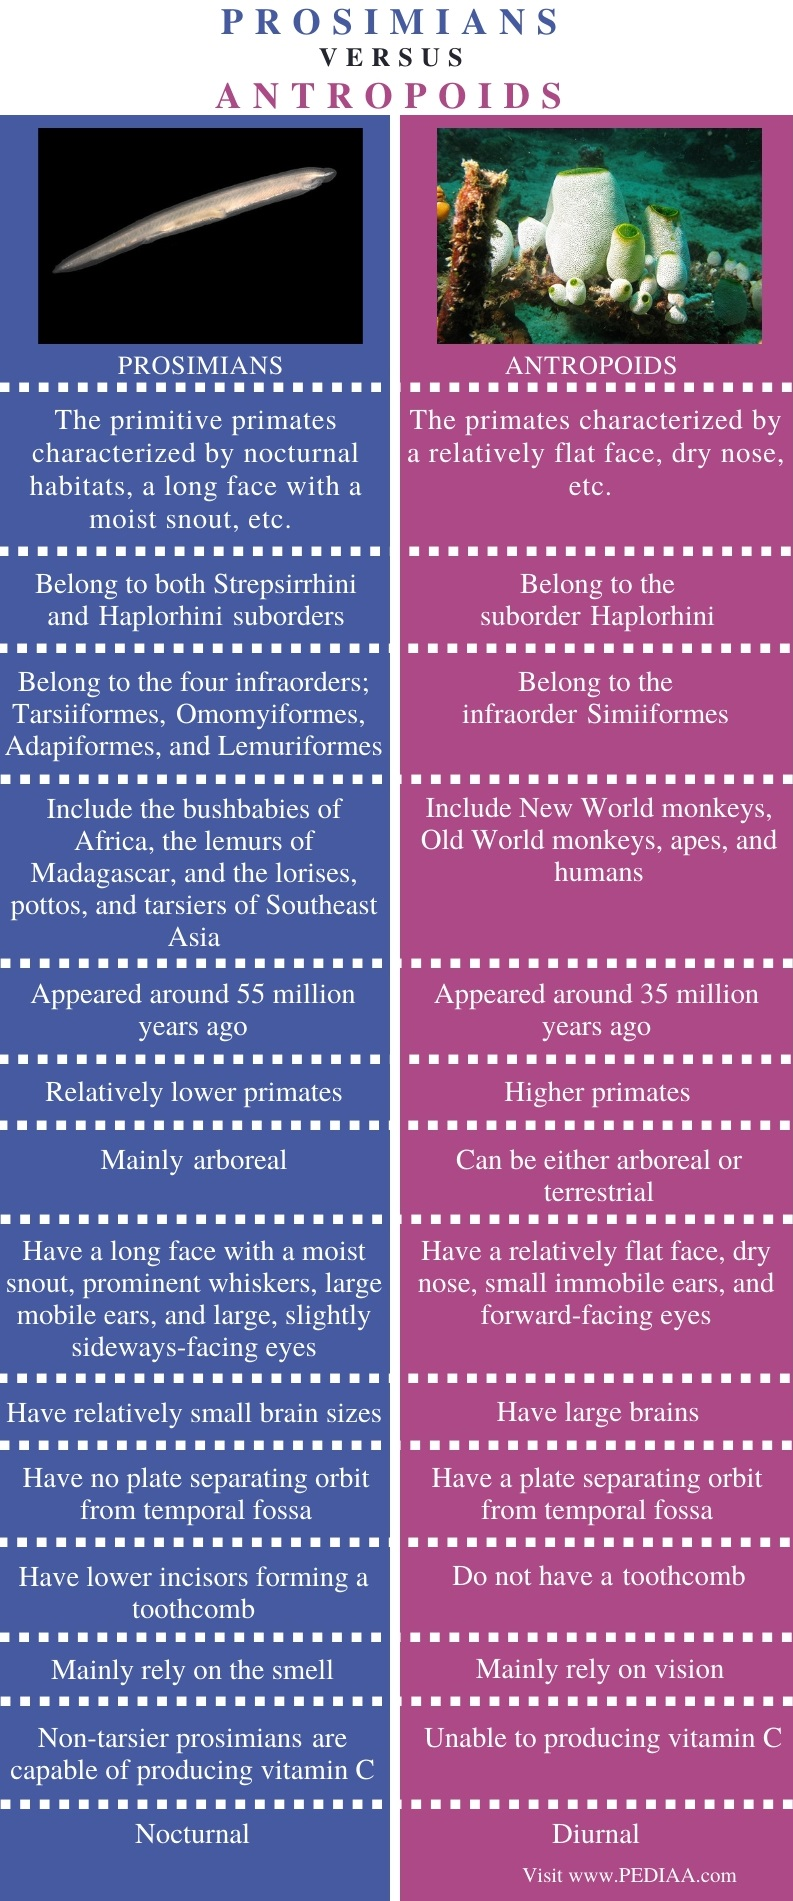 Difference Between Prosimians and Anthropoids - Comparison Summary